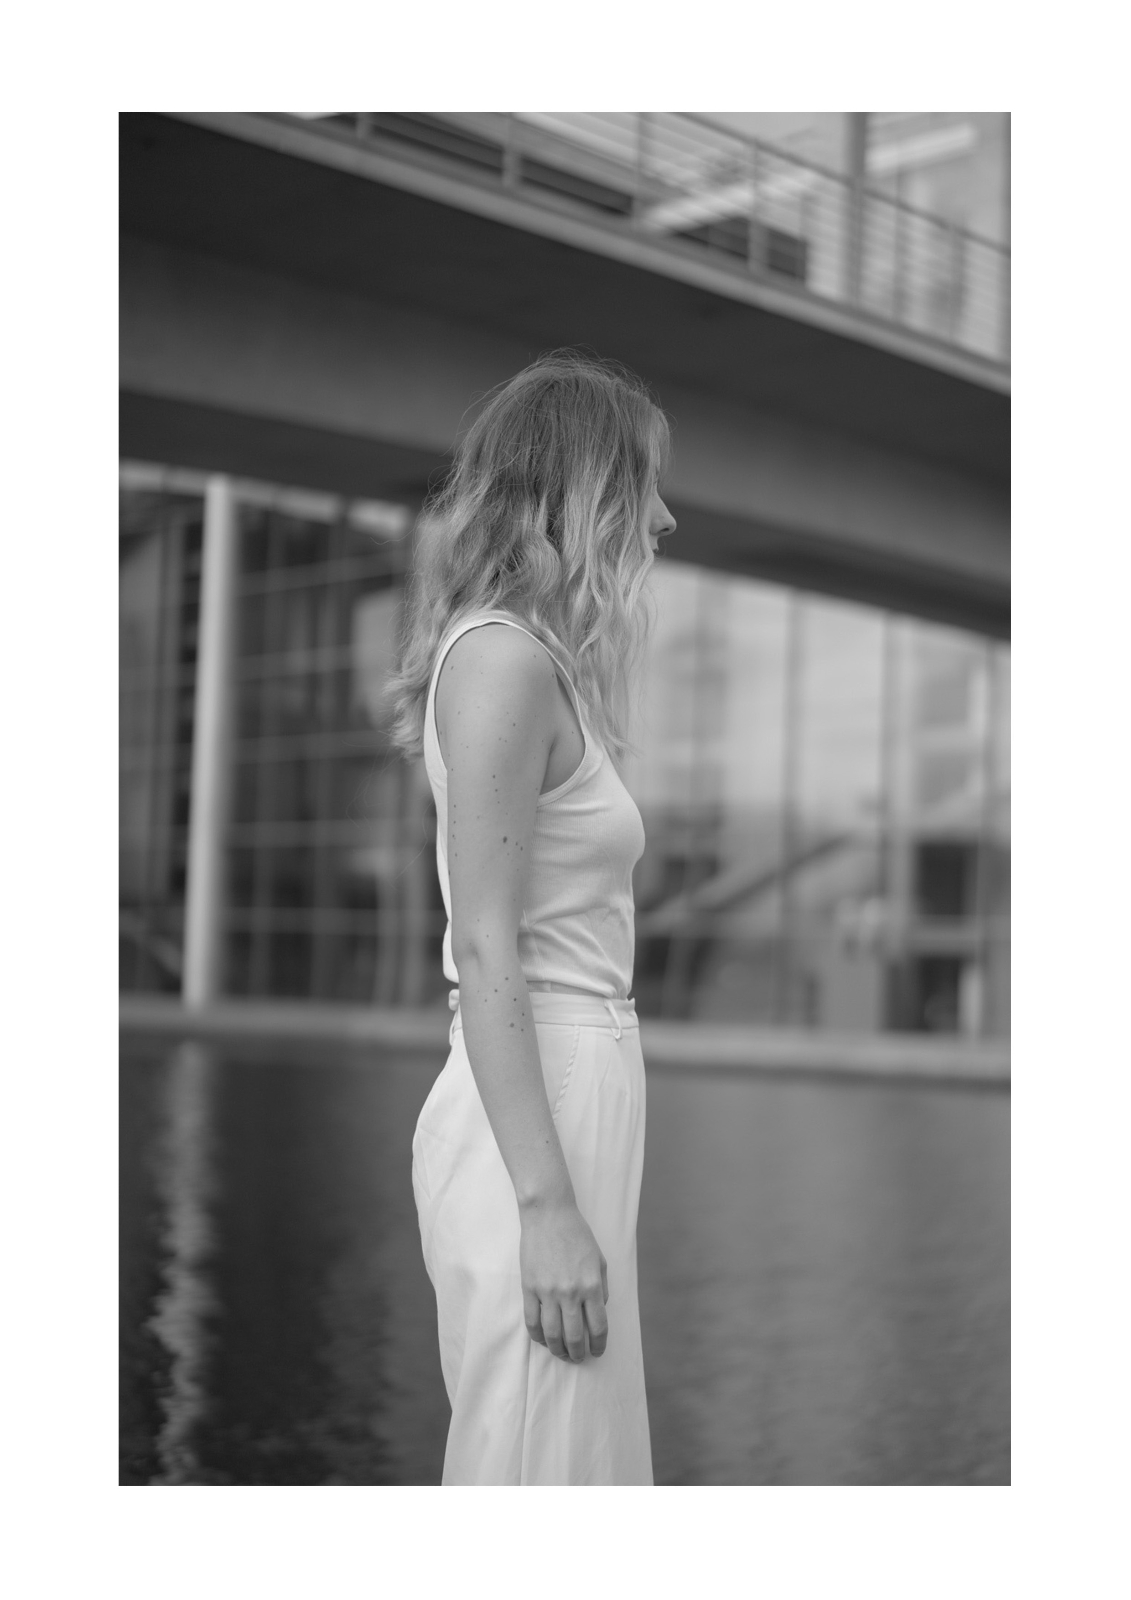 calvin Klein_obsessed_TheLimitsofControl_Fashionblogger_Berlin_Deutschland_Germany_thelimitsofcontrol_fashionblogger